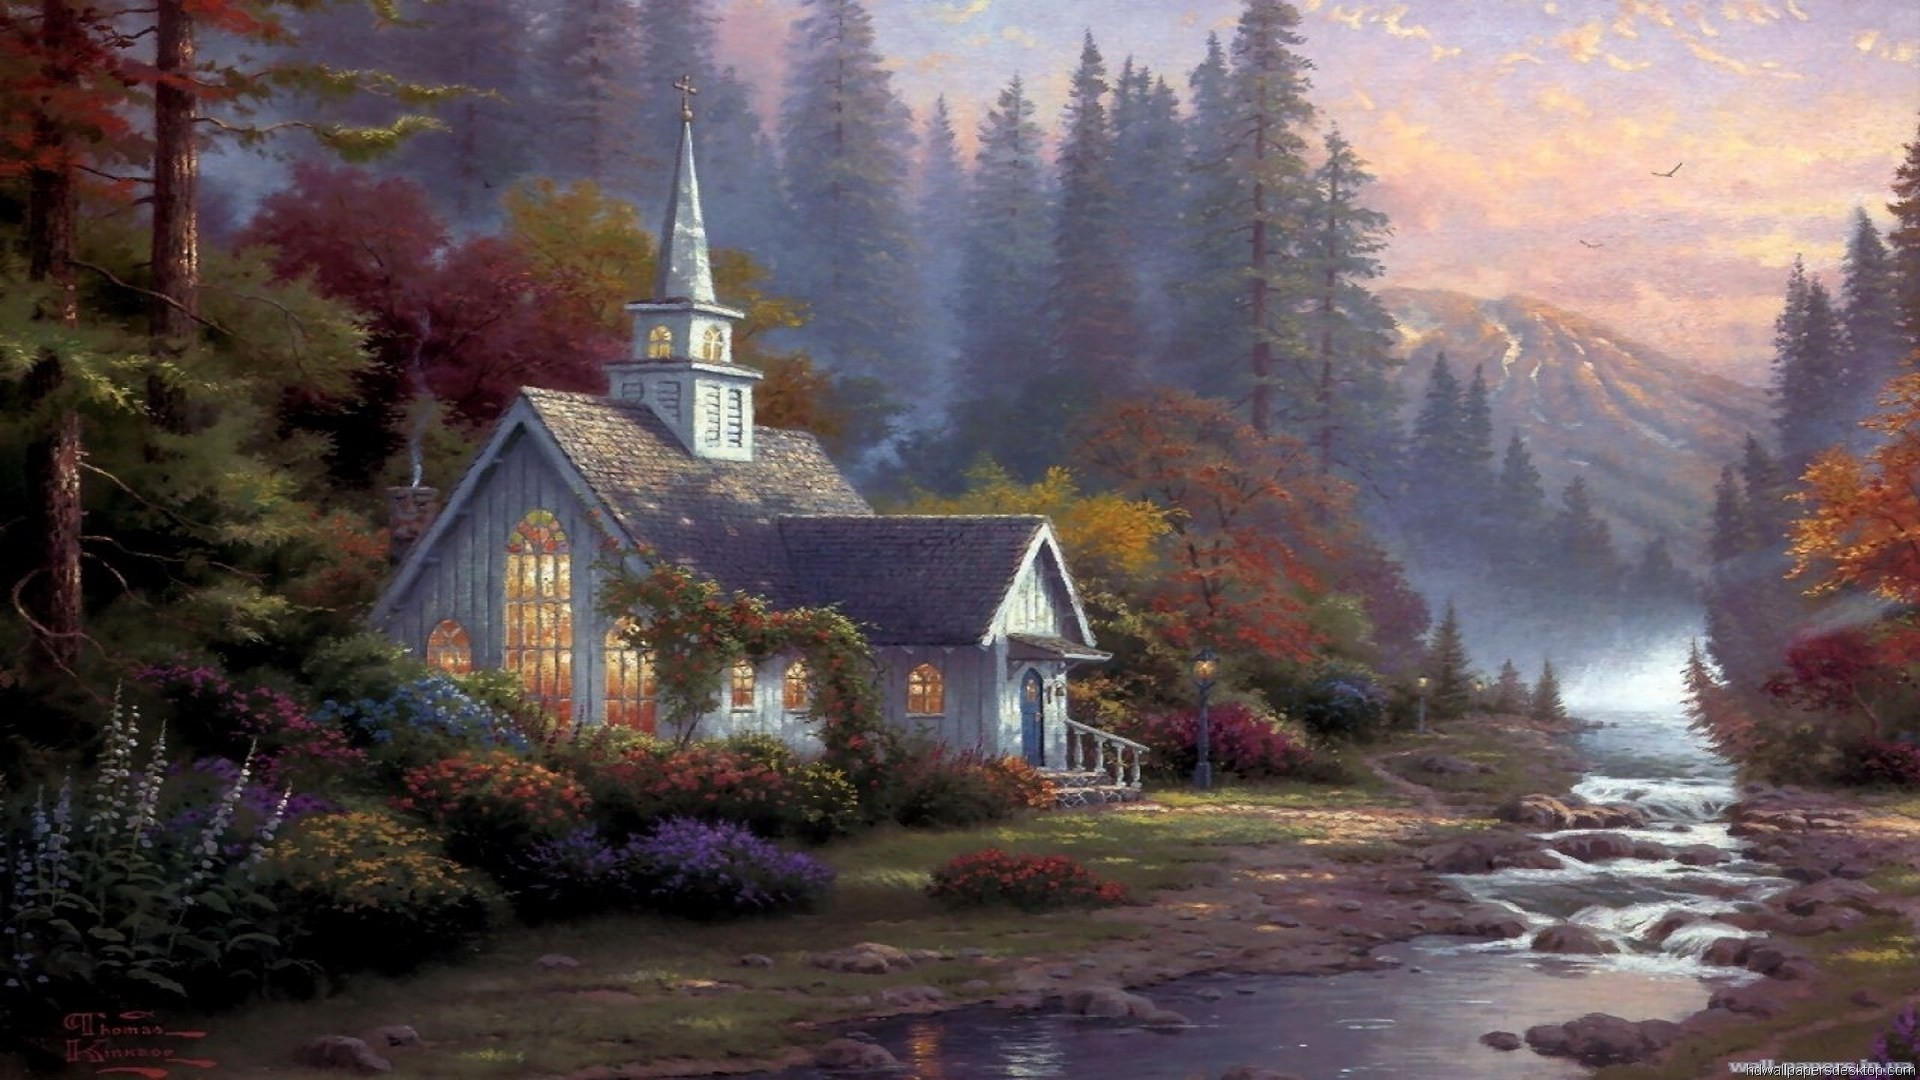 1920x1080 ... Great Thomas Kinkade Wallpaper Download free wallpapers and desktop  backgrounds in a variety of screen resolutions